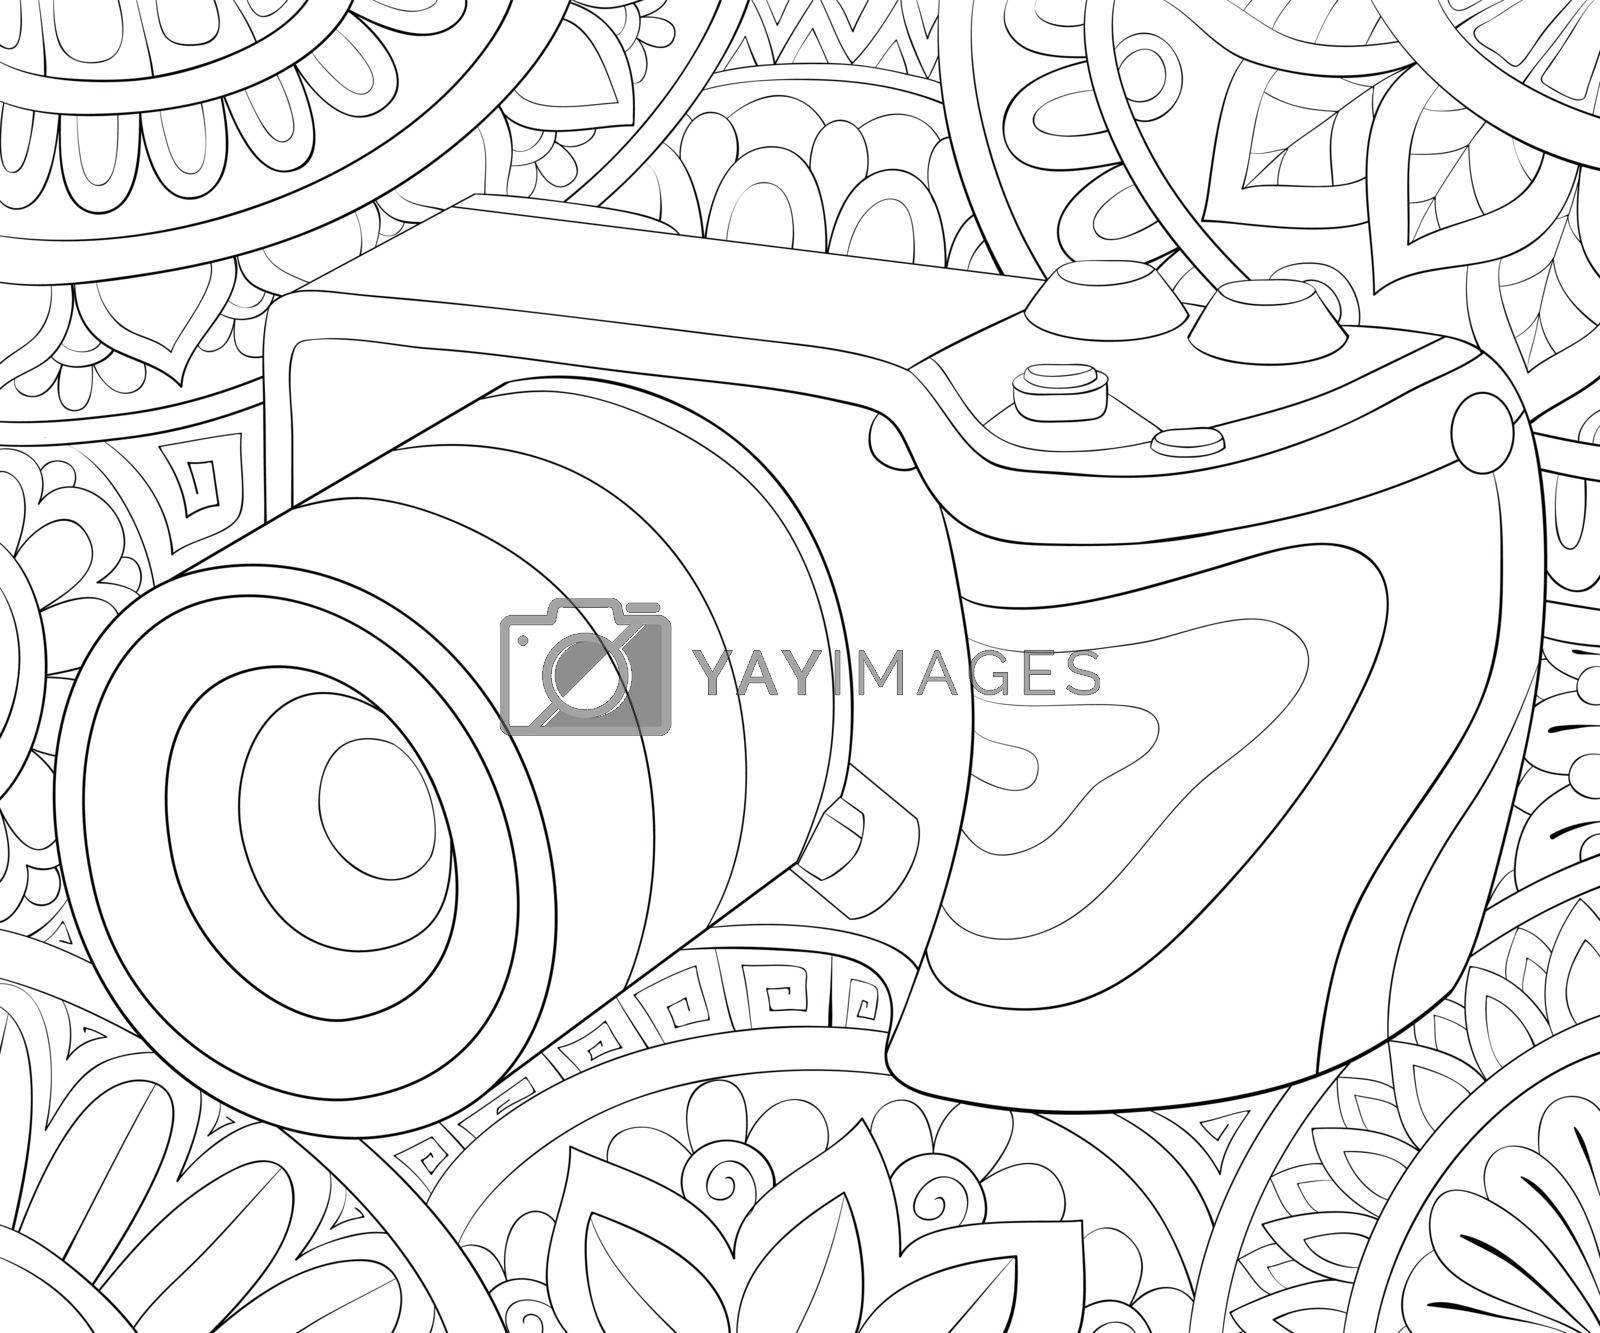 A cute camera  on the abstract background with ornaments image for relaxing activity.Coloring book,page for adults.Zen art style illustration for print.Poster design.